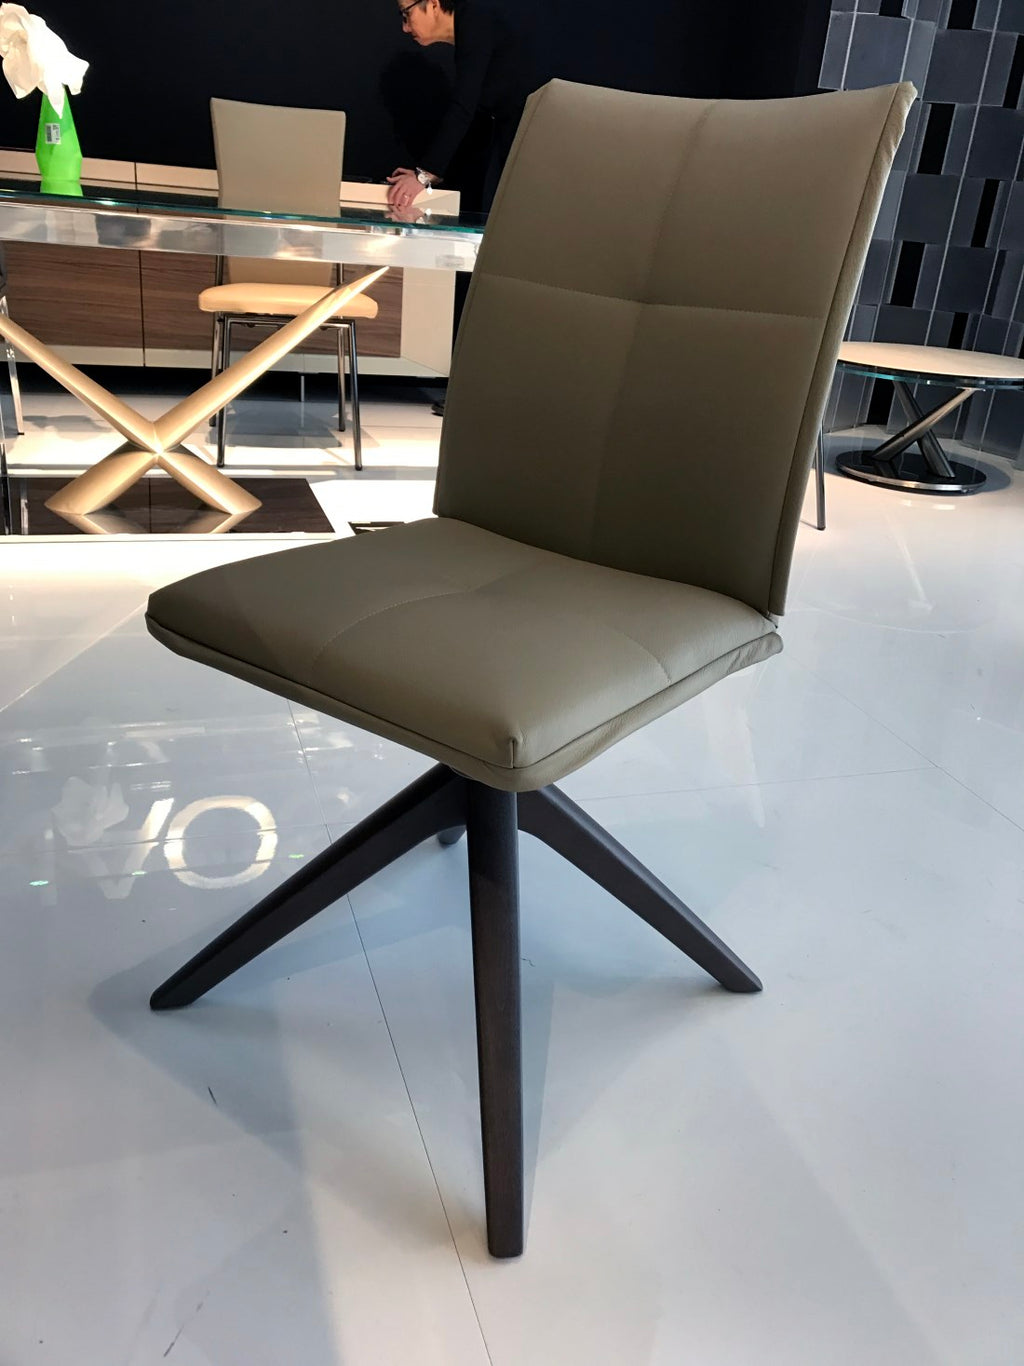 Starcast Chair - italydesign.com